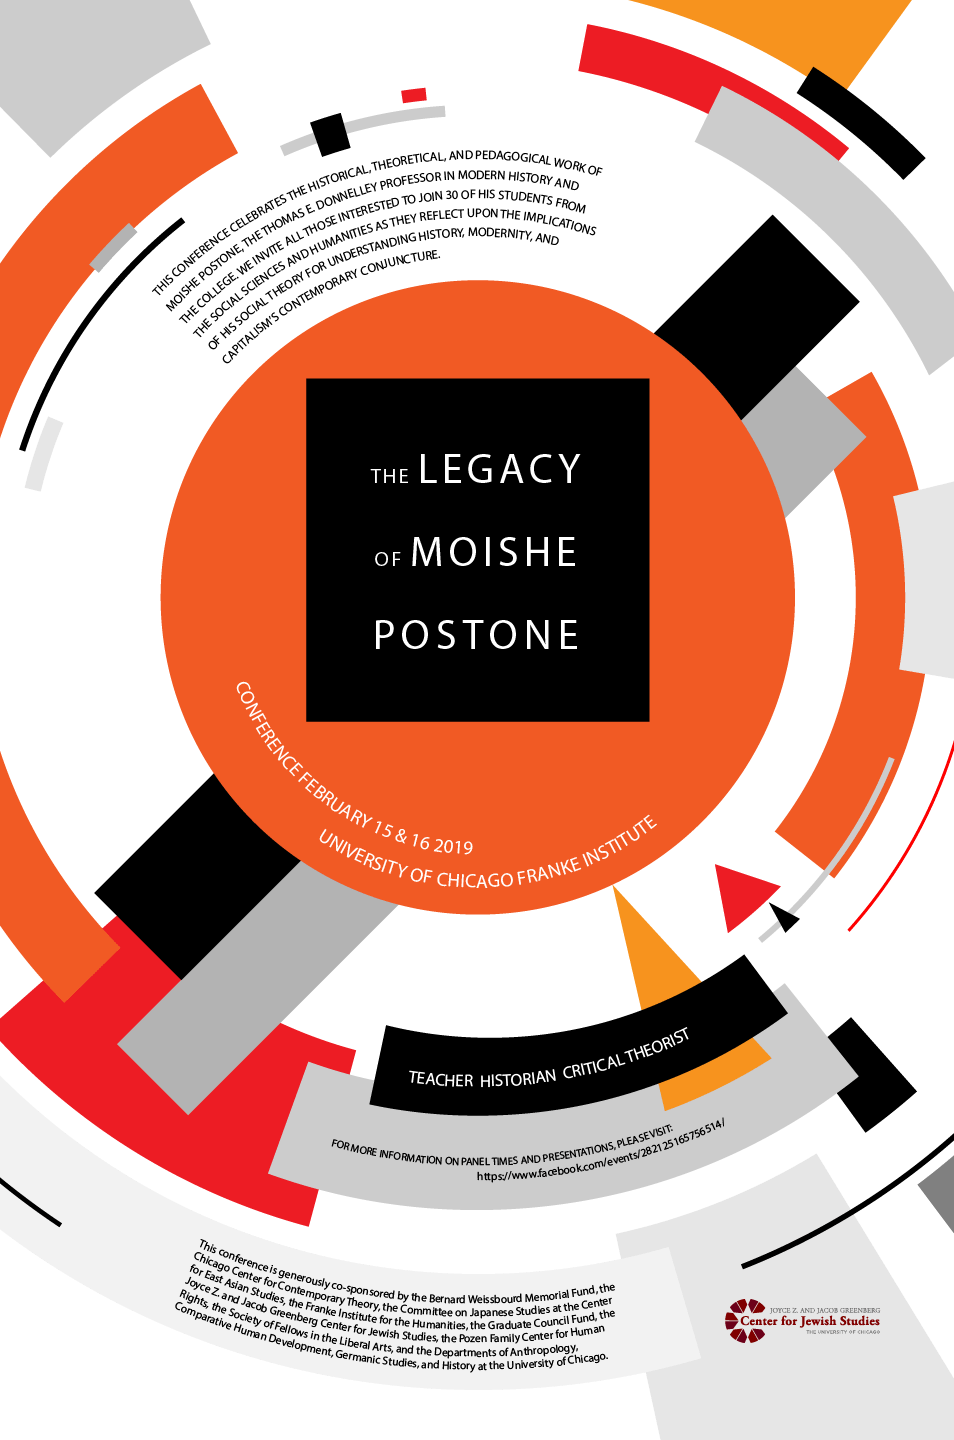 The Legacy of Moishe Postone poster